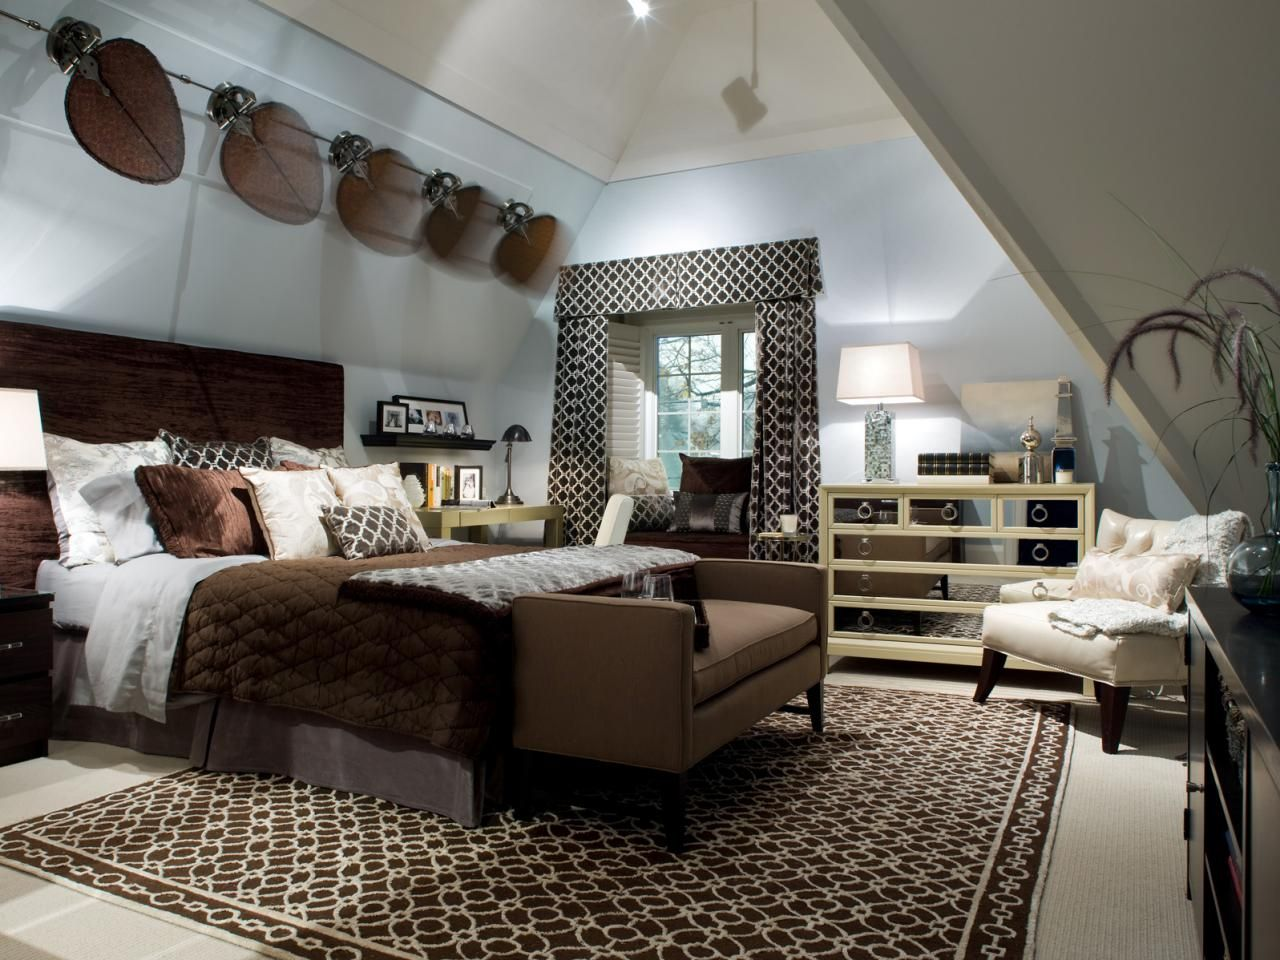 Candice Olson Designs Bedroom Glamorous 10 Bedroom Retreats From Candice Olson  Candice Olson Bedroom Design Ideas